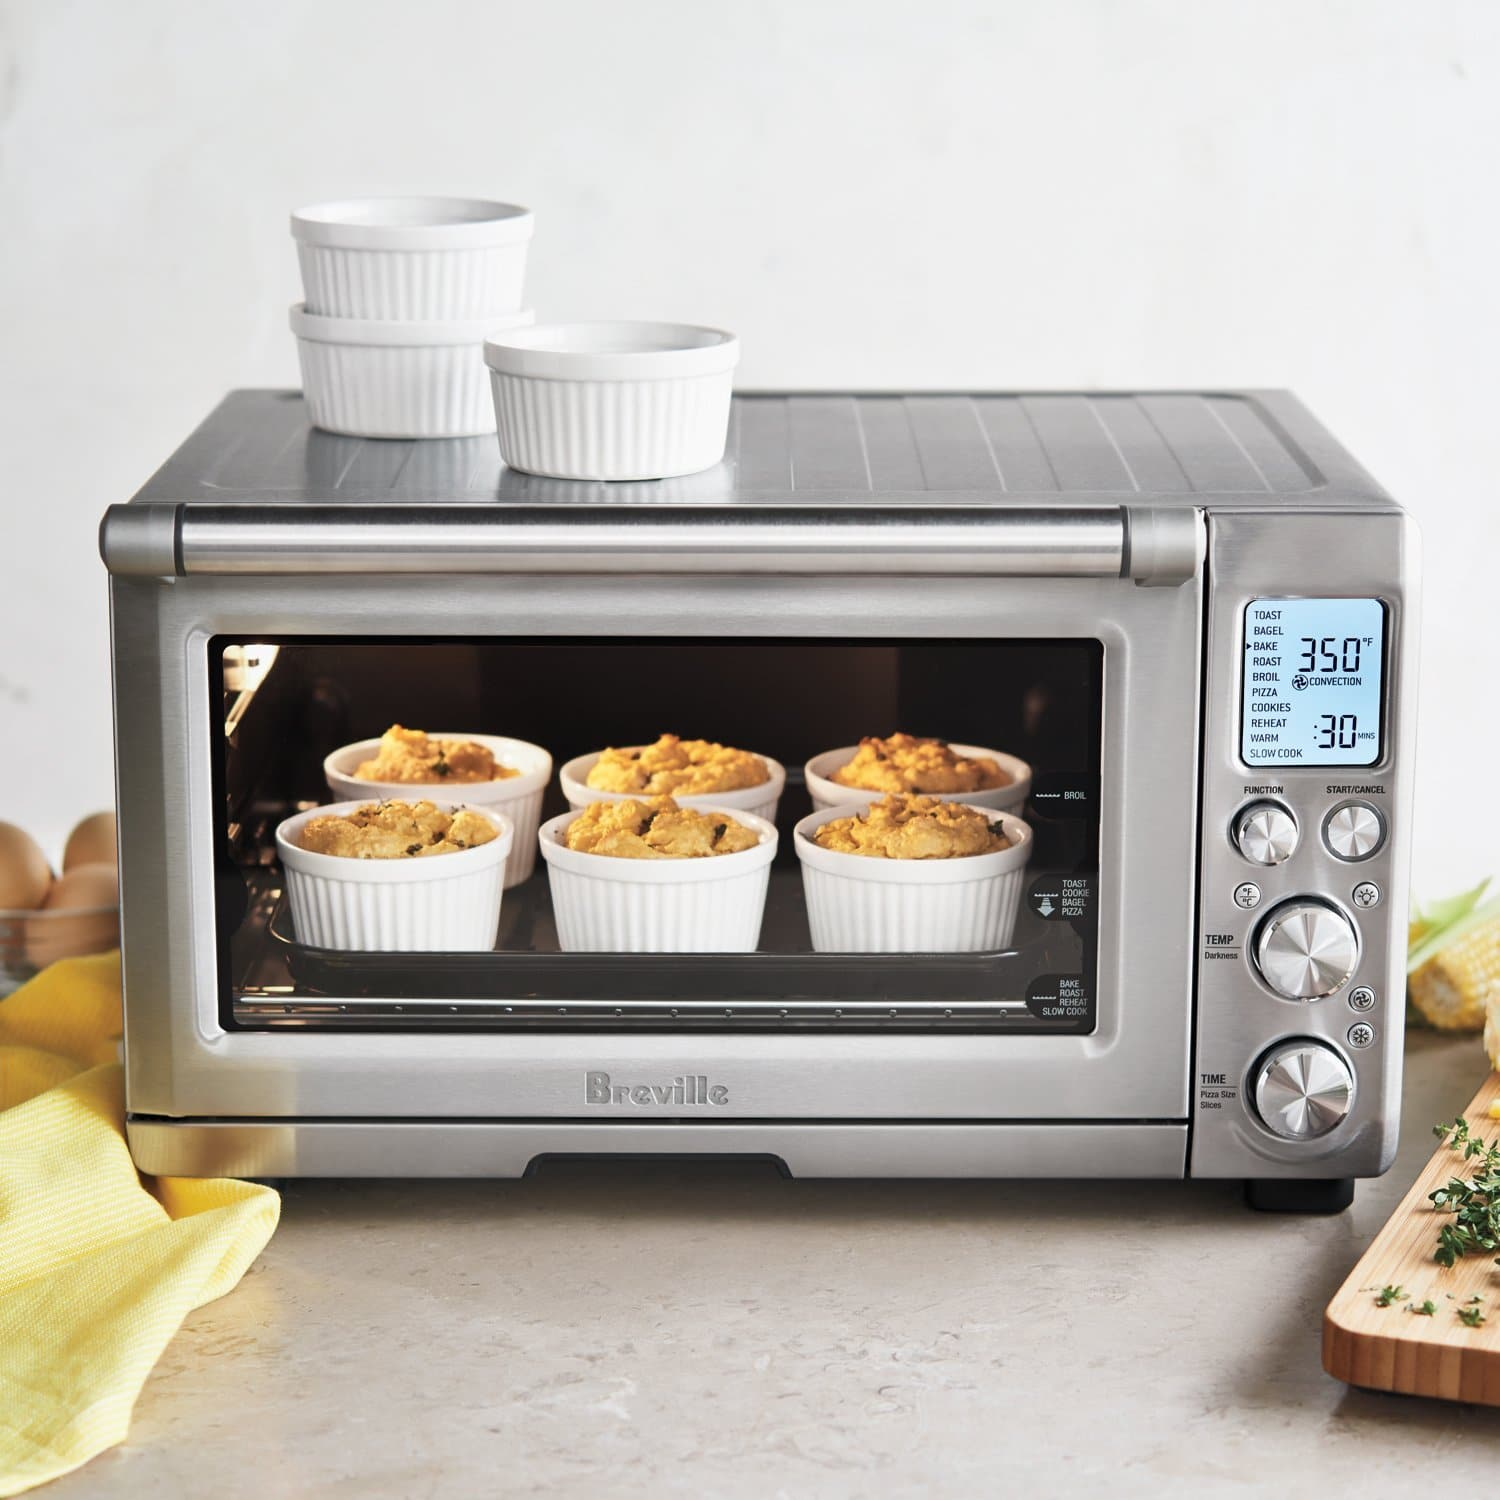 Breville Bov845bss Smart Oven Pro Review Updated 2018